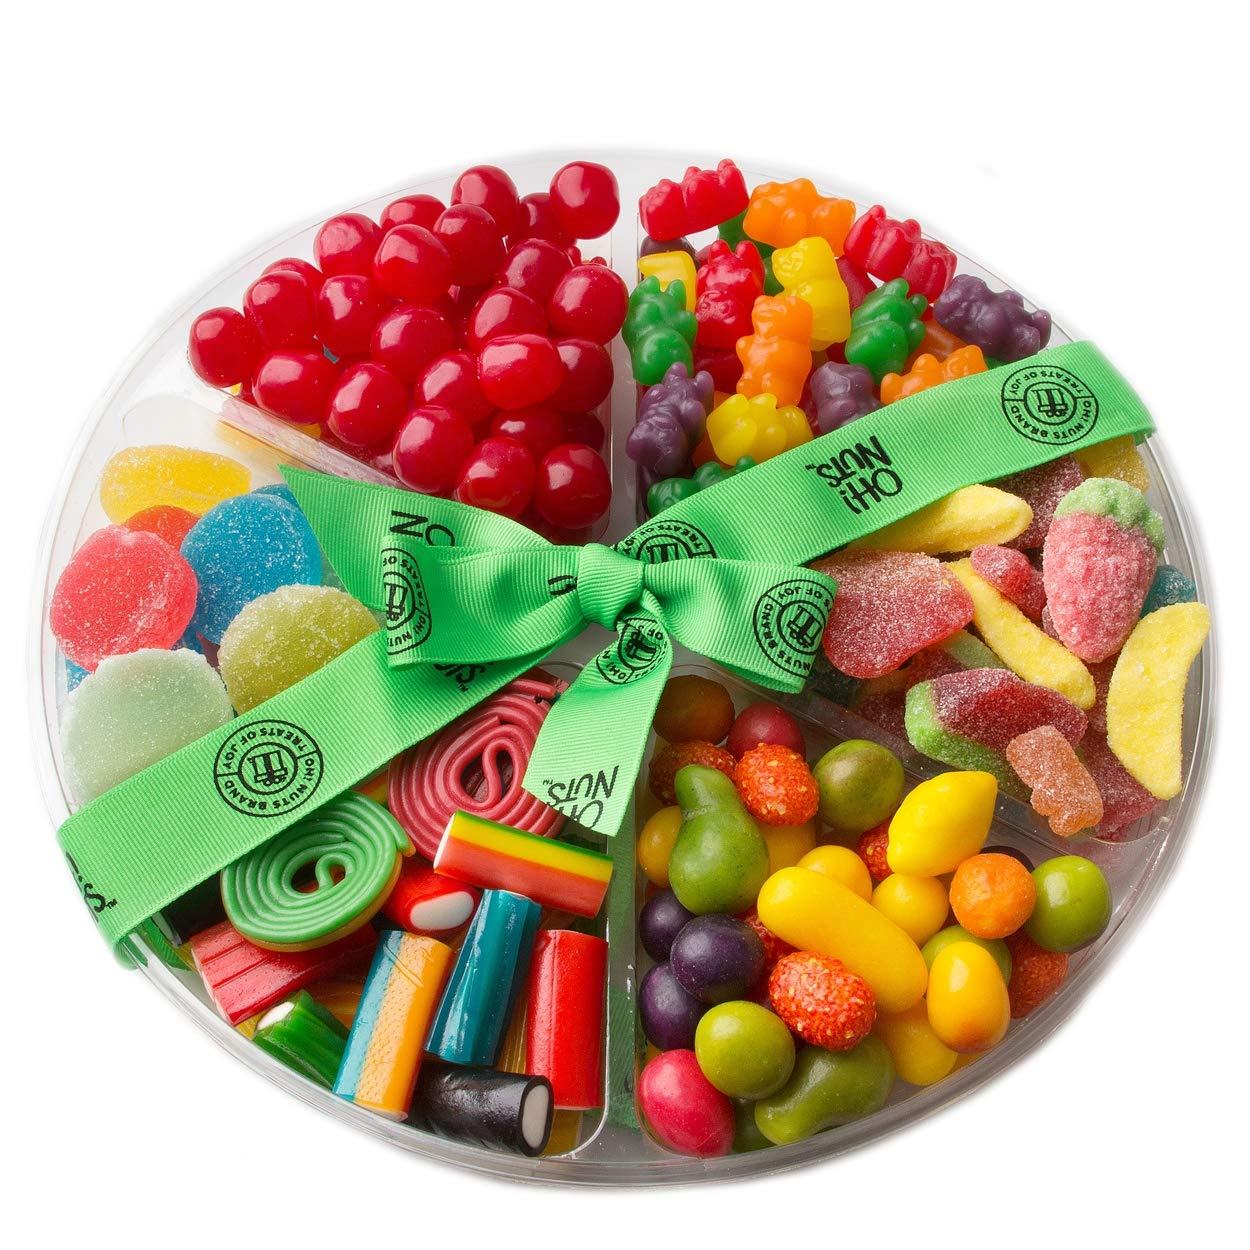 Kosher Camp Packages and Gifts - Kosher Snack and Kosher Candy - Oh! Nuts (6 Section Candy and Gummy Assortment)